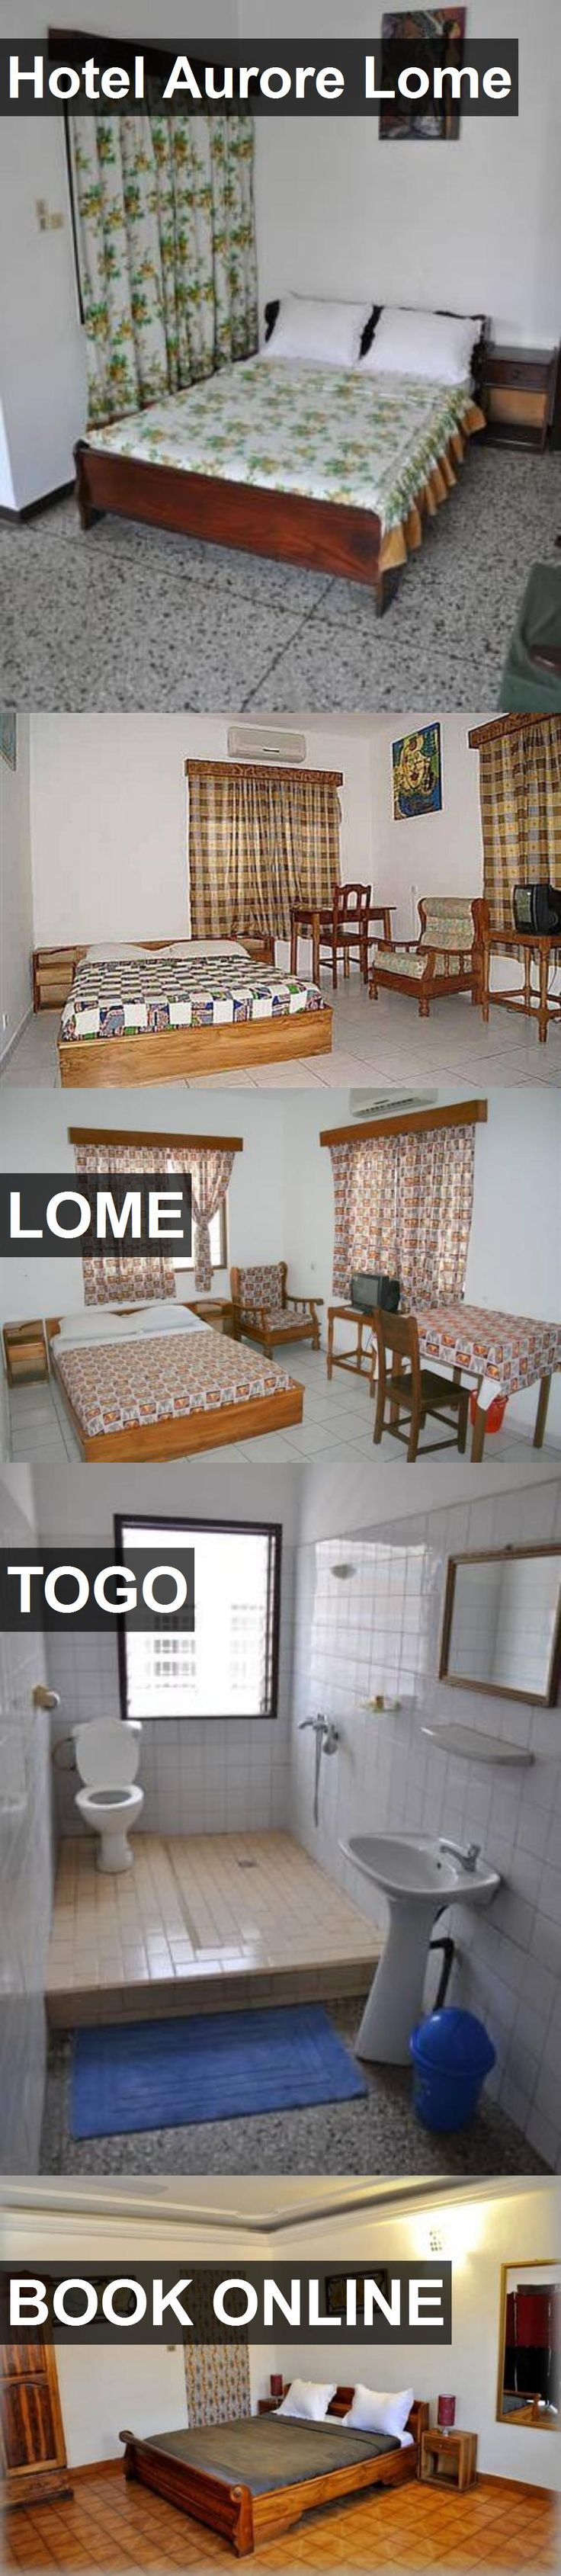 Hotel Hotel Aurore Lome in Lome, Togo. For more information, photos, reviews and best prices please follow the link. #Togo #Lome #HotelAuroreLome #hotel #travel #vacation